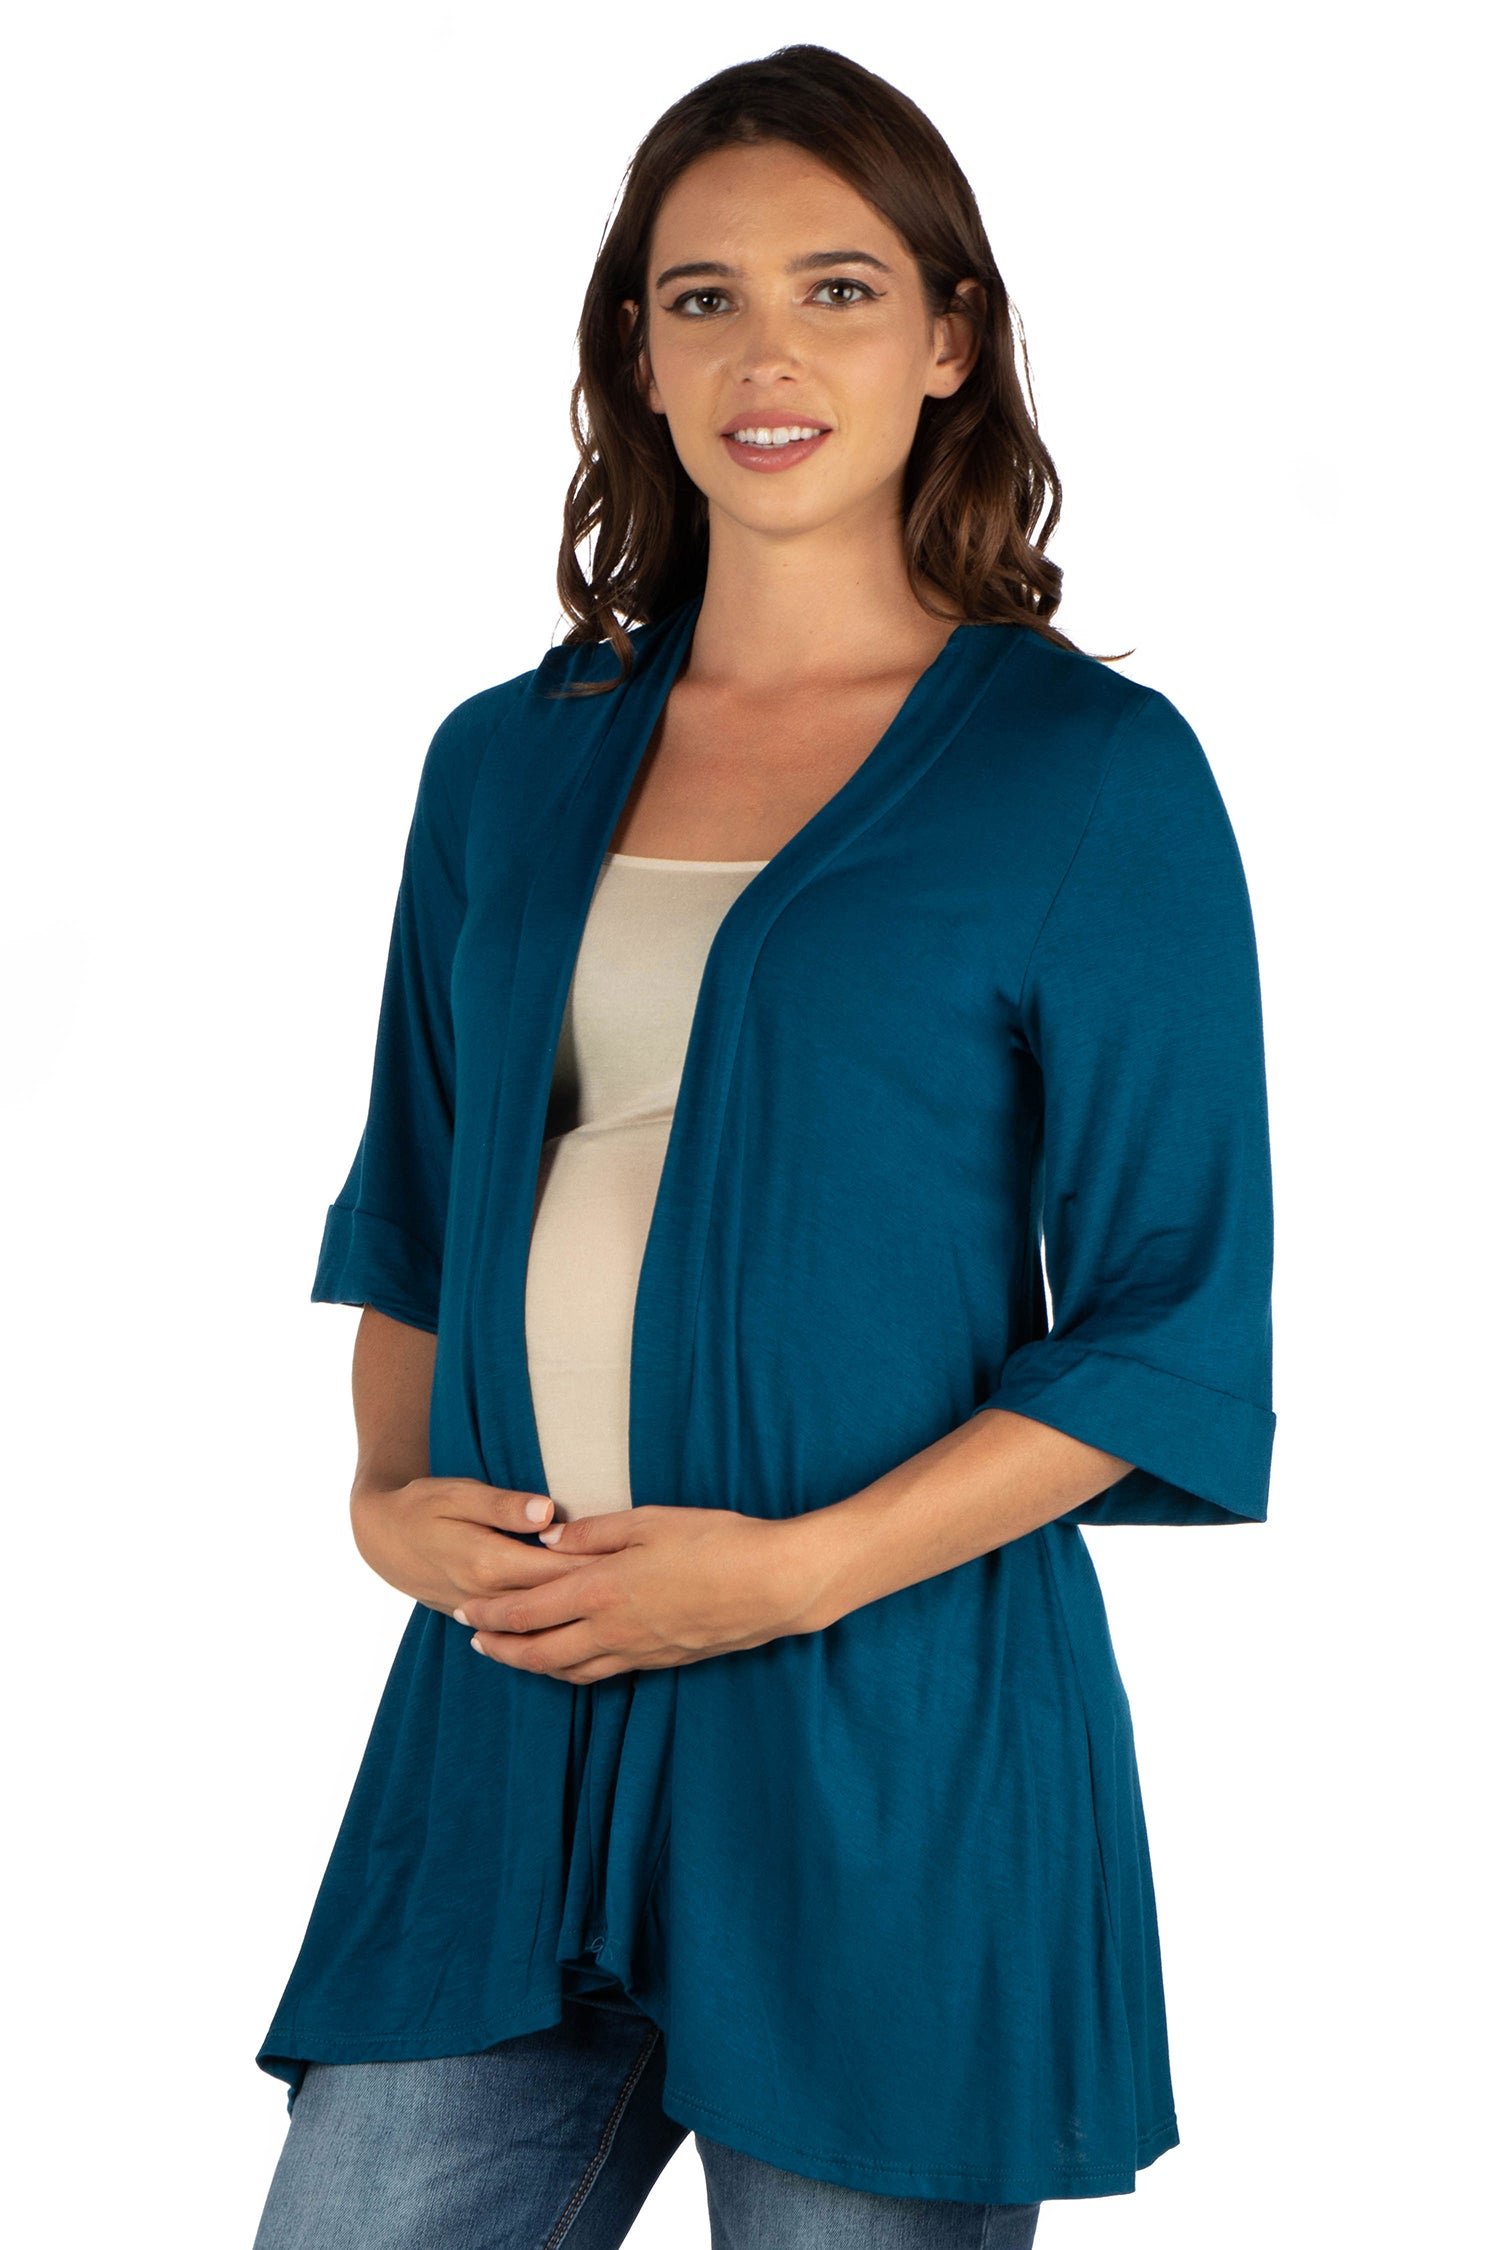 24seven Comfort Apparel Elbow Length Sleeve Open Front Maternity Cardigan-SHRUGS-24Seven Comfort Apparel-TEAL-1X-24/7 Comfort Apparel